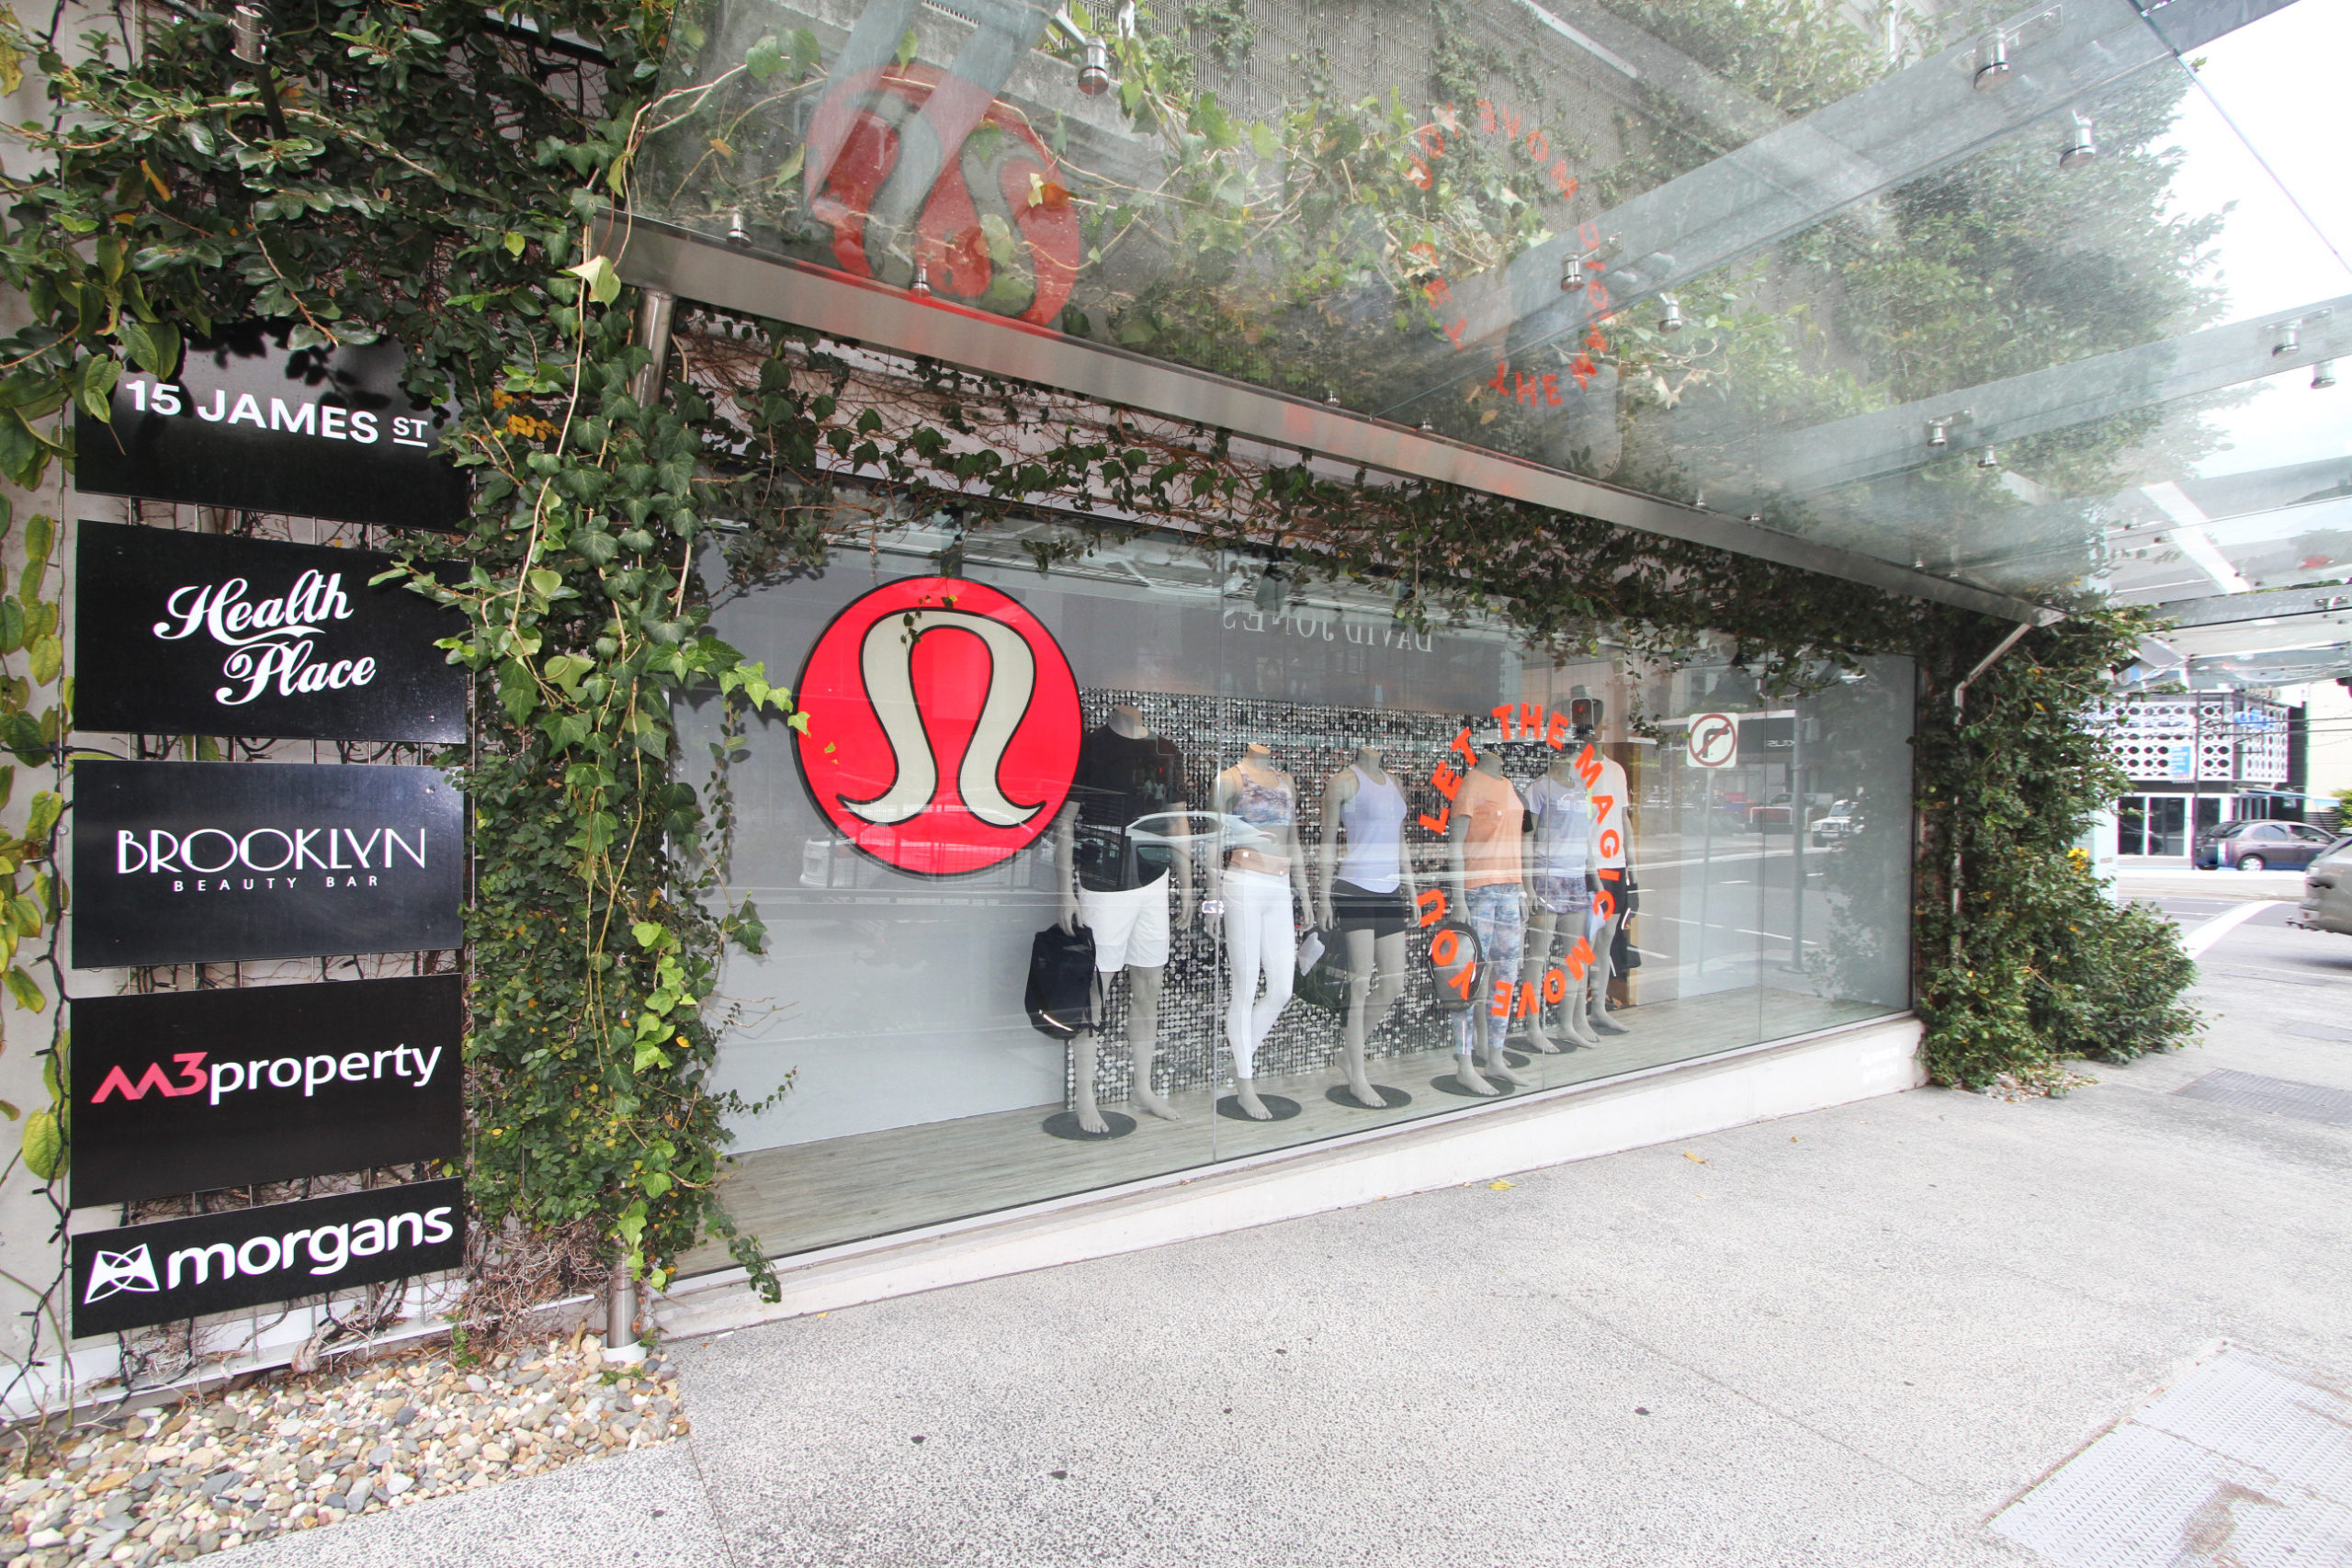 15 James Street, Fortitude Valley Retail for Lease